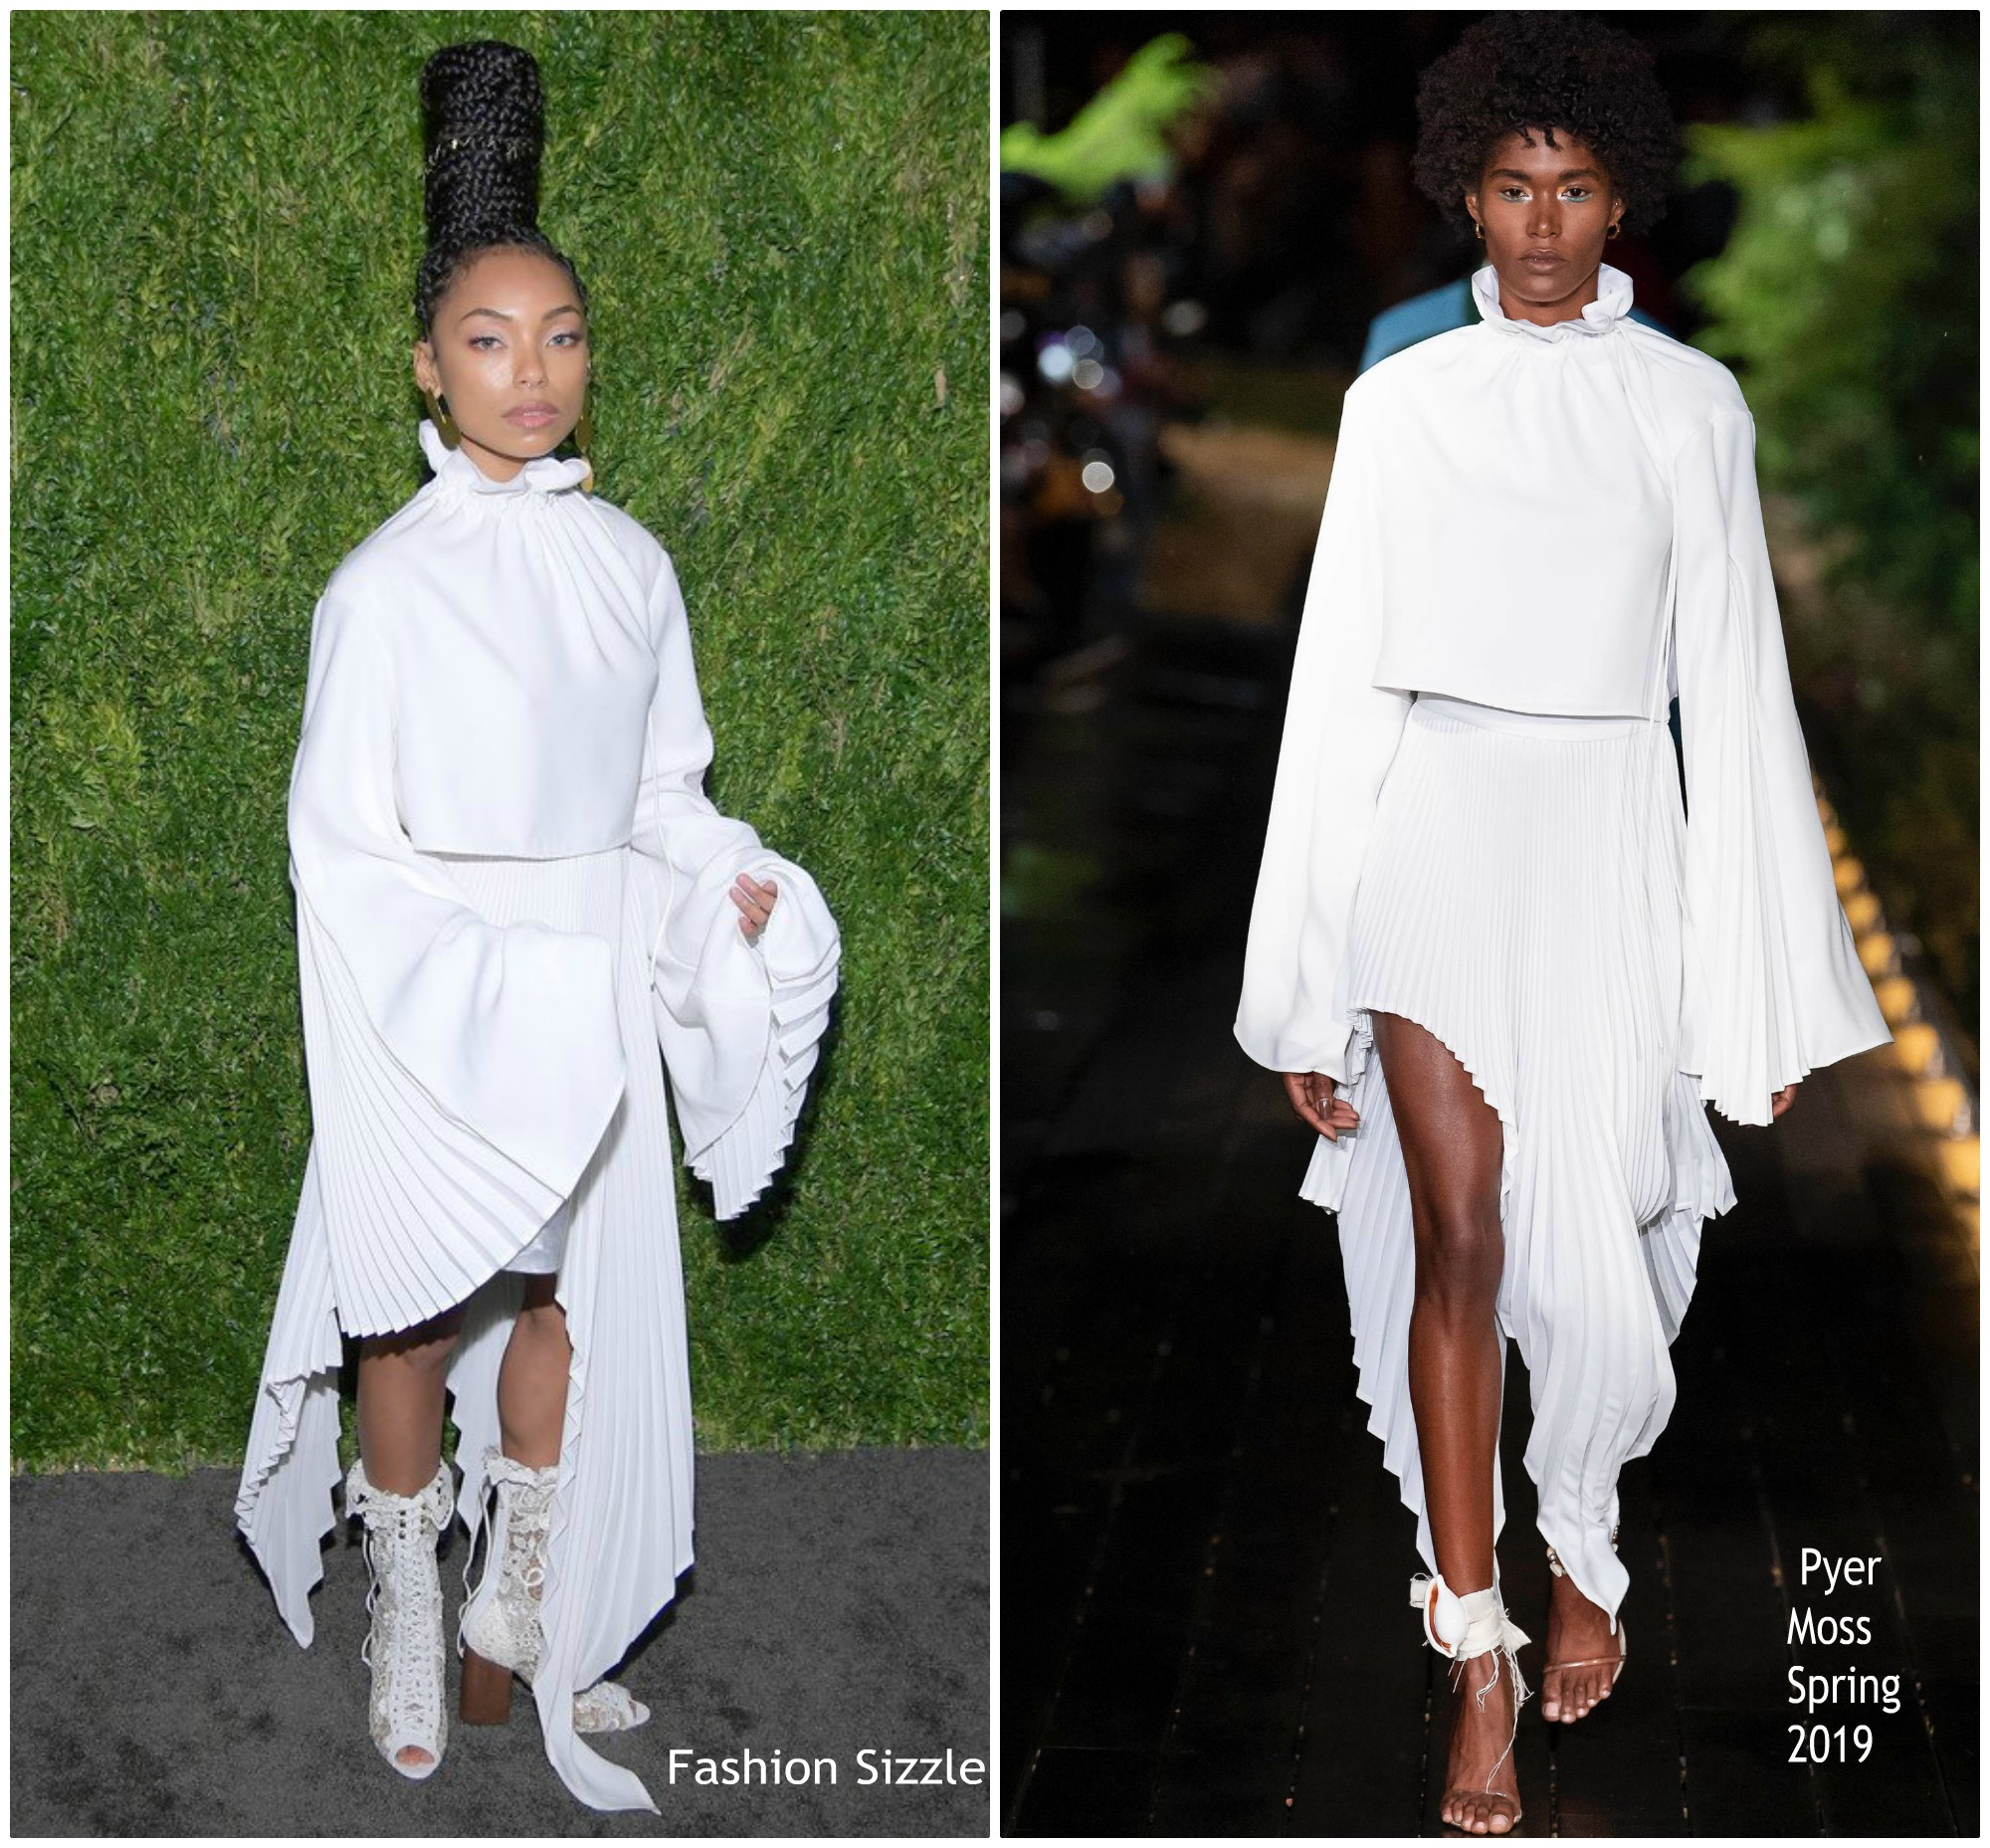 logan-browning-in-pyer-moss-2018-cfda-vogue-fashion-fund-awards